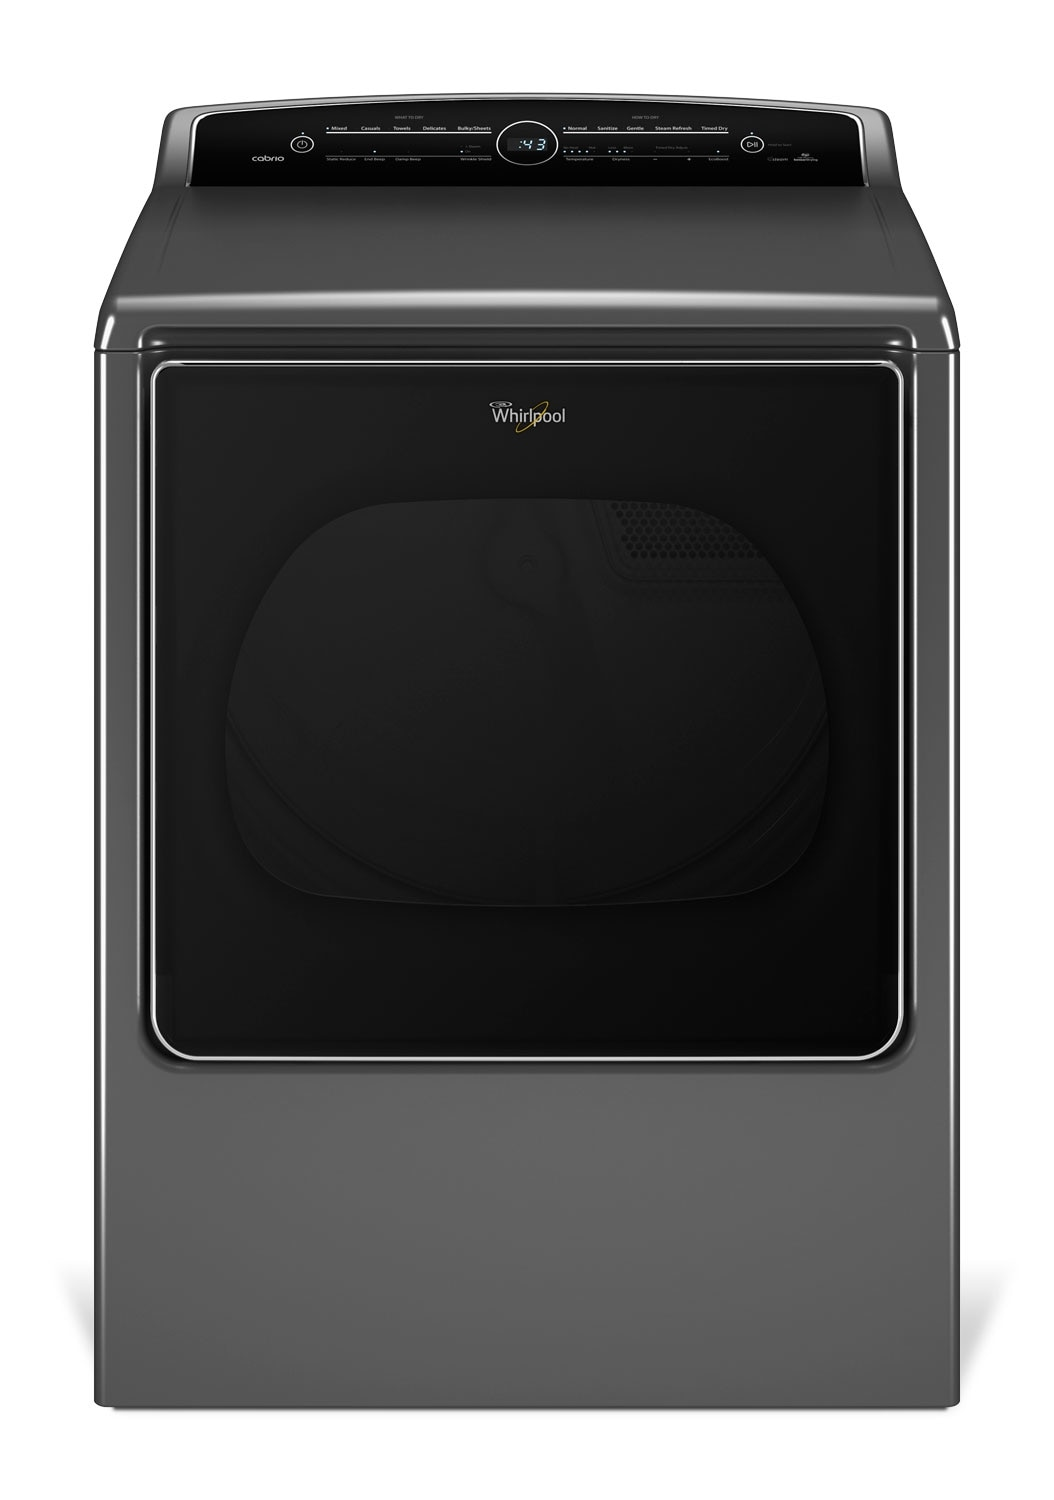 Whirlpool Dryer (8.8 Cu. Ft.) YWED8500DC